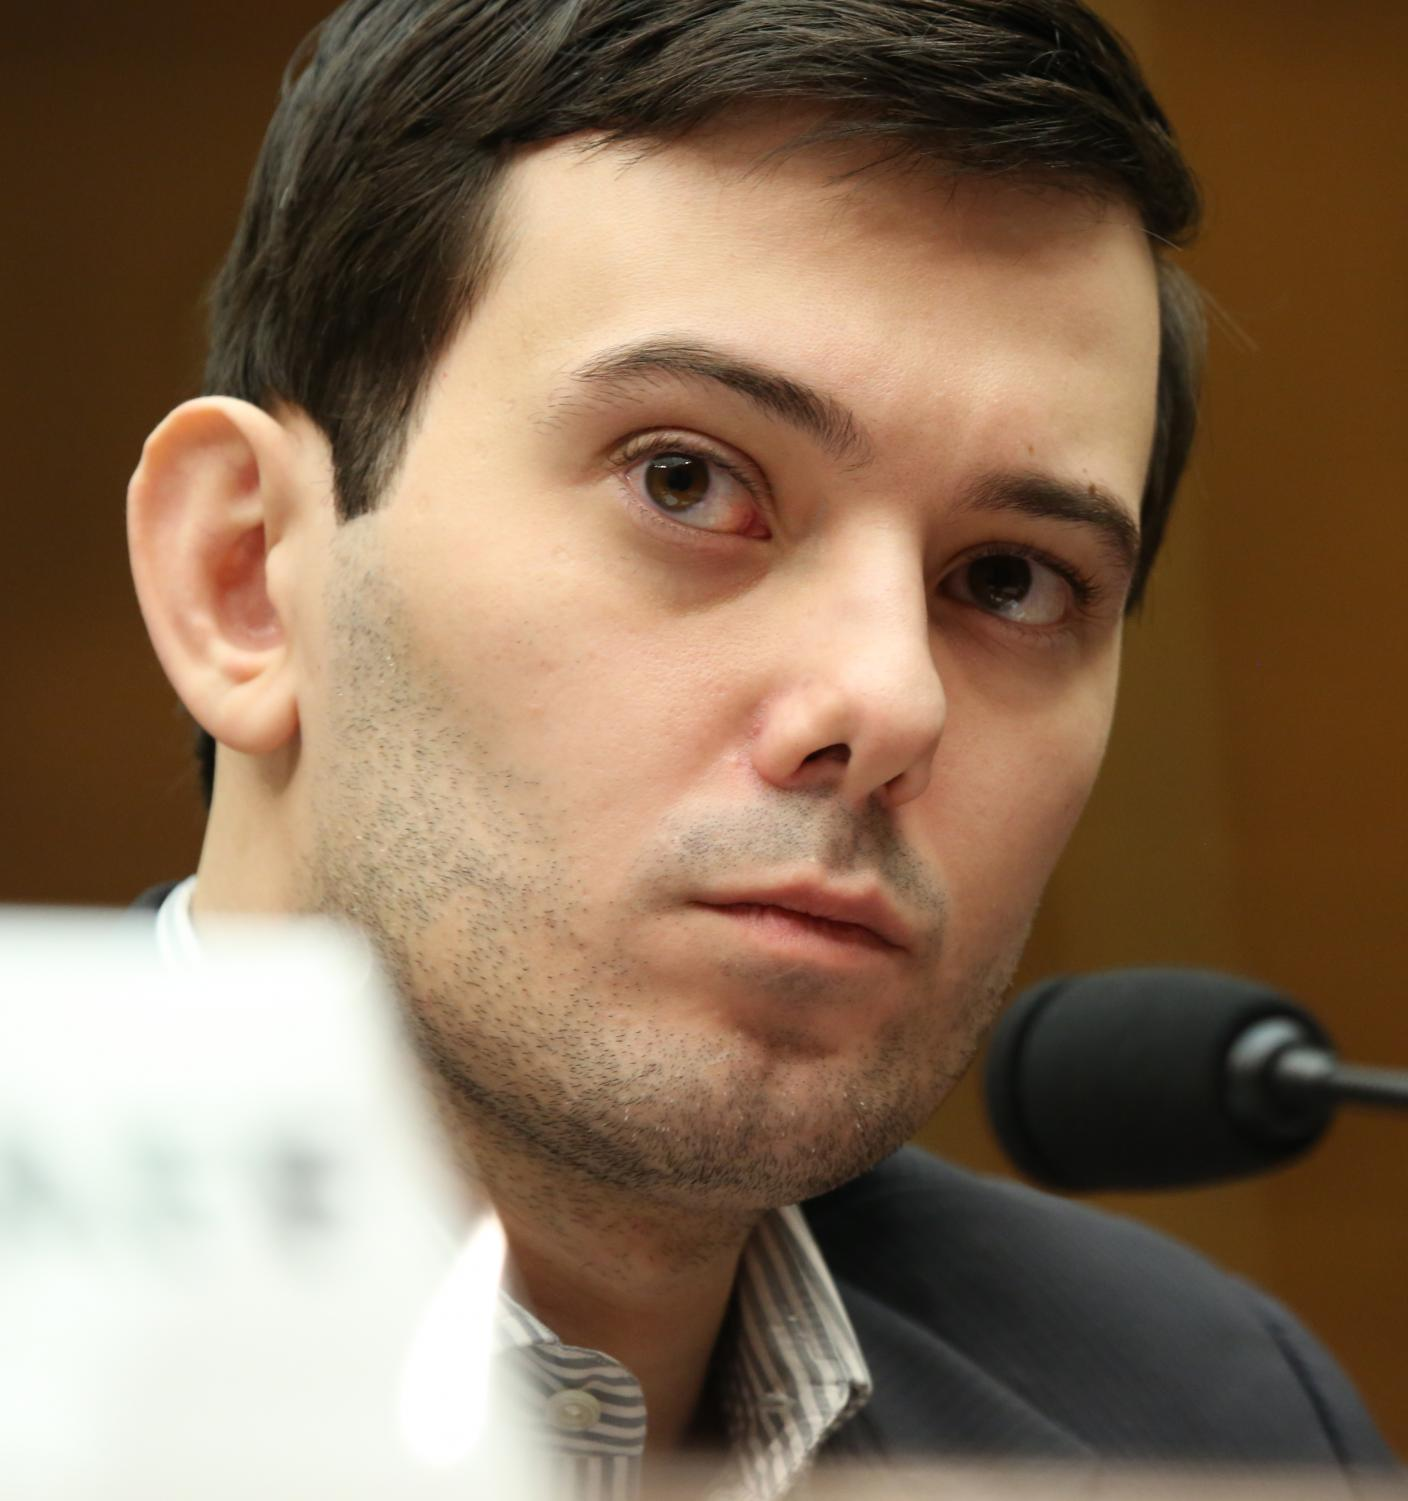 Shkreli in 2016. Photo via Wikimedia Commons under Creative Commons License.